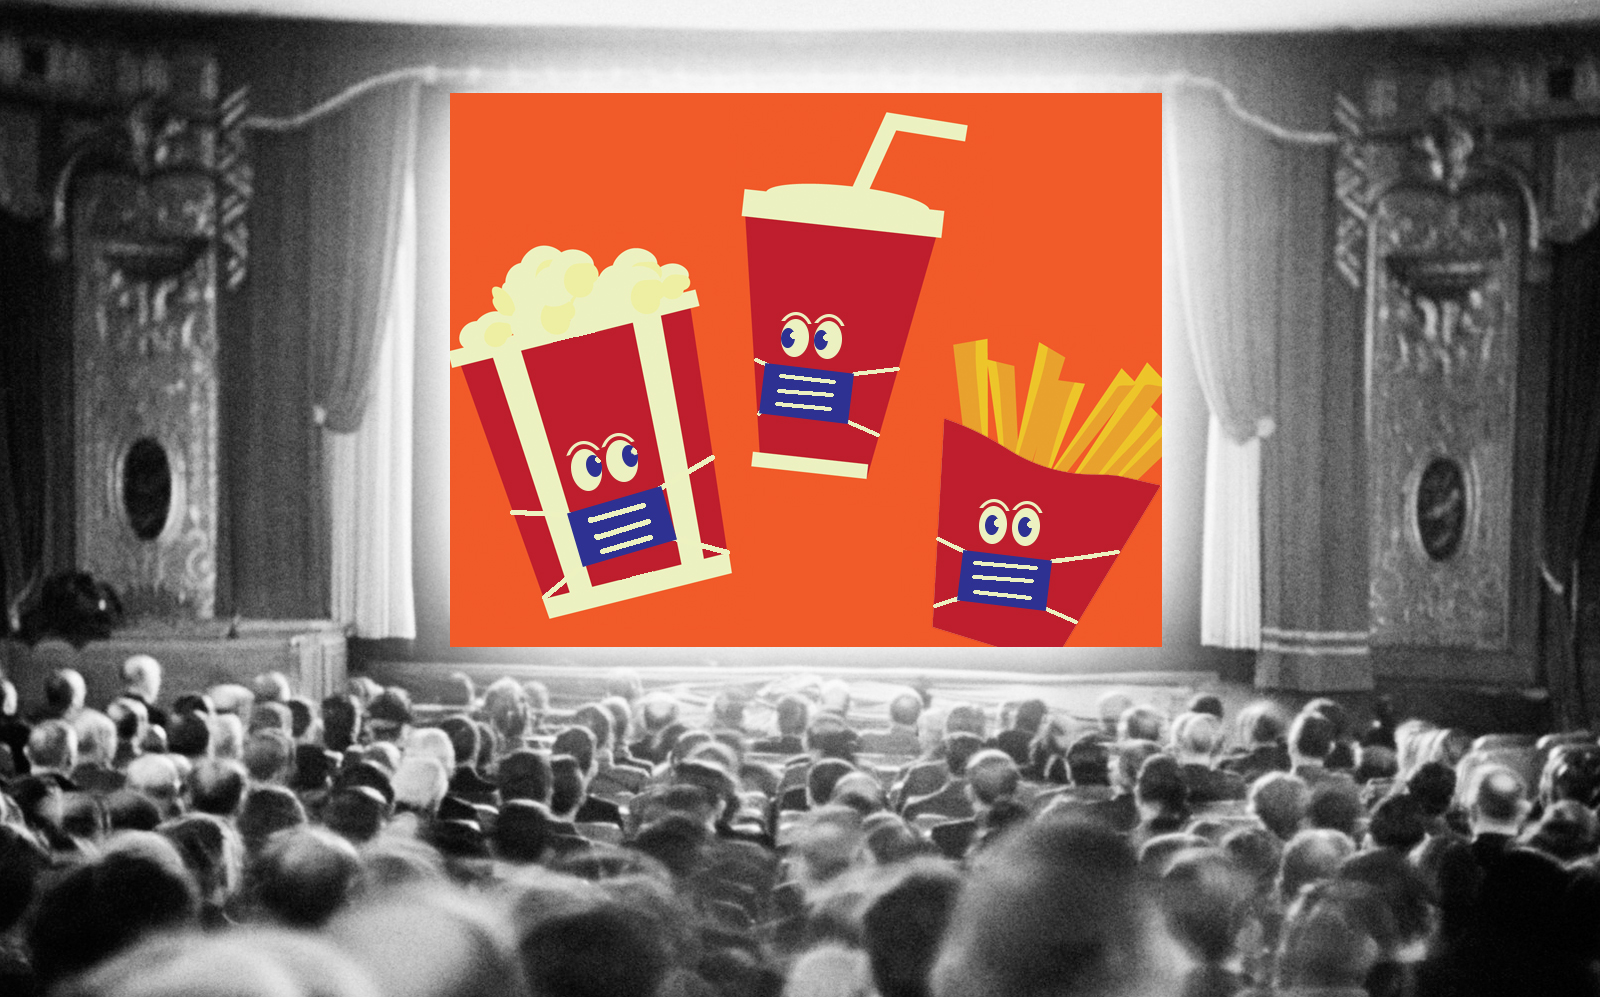 Theaters in some cities are opening with restrictions. (Getty, Photo Illustration by Alison Bushor for The Real Deal)